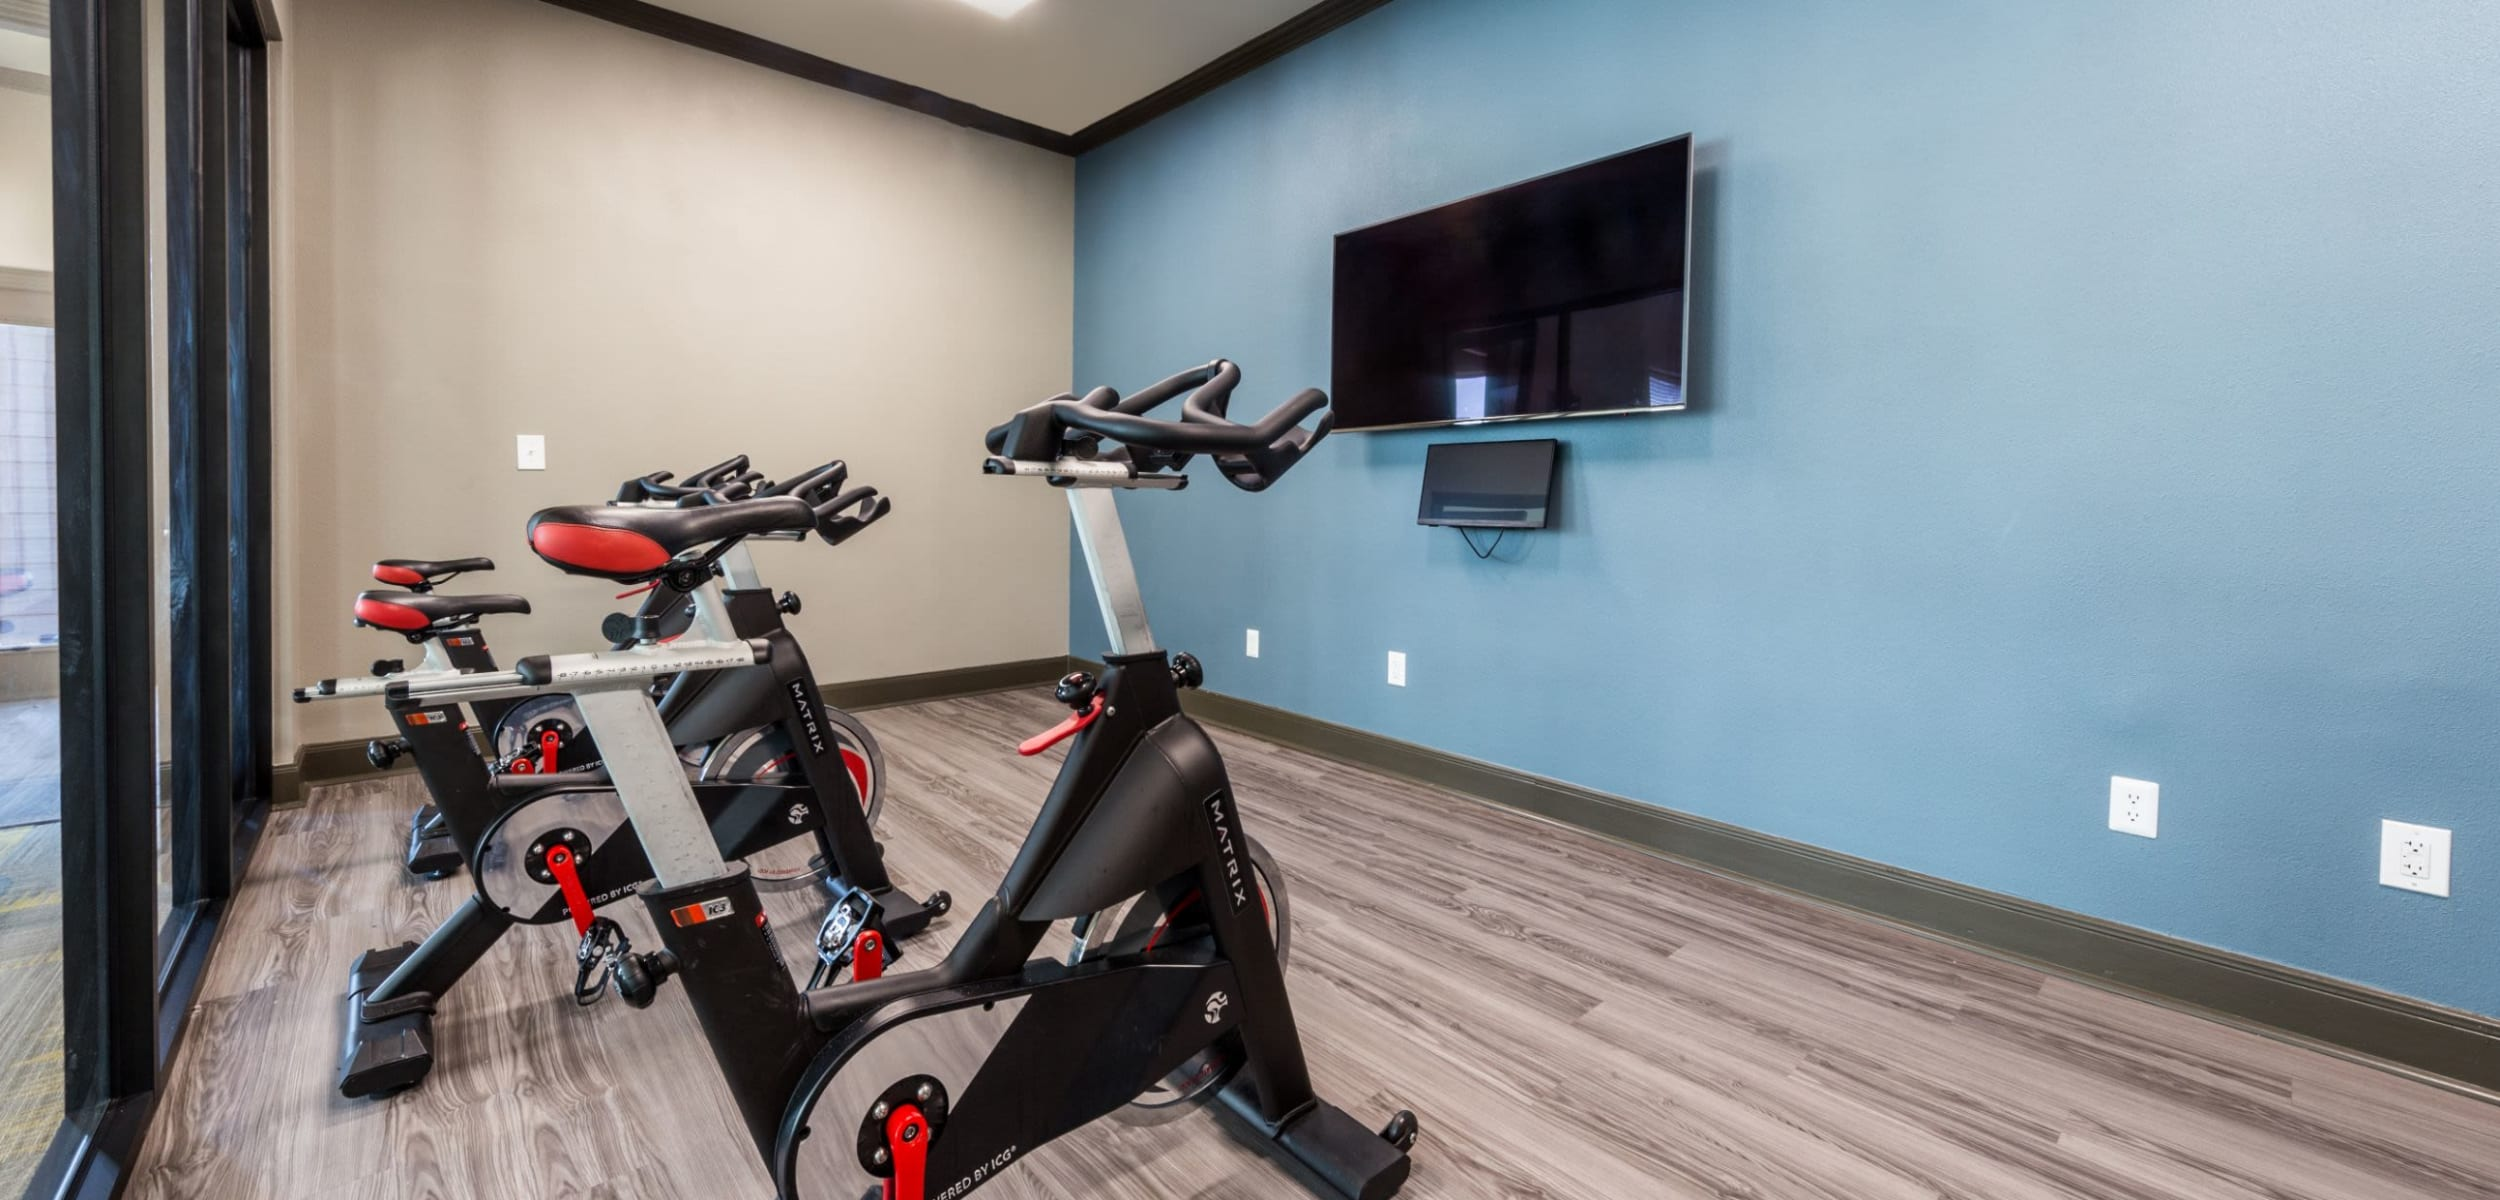 Spin cycle room at Marquis at Stonebriar in Frisco, Texas